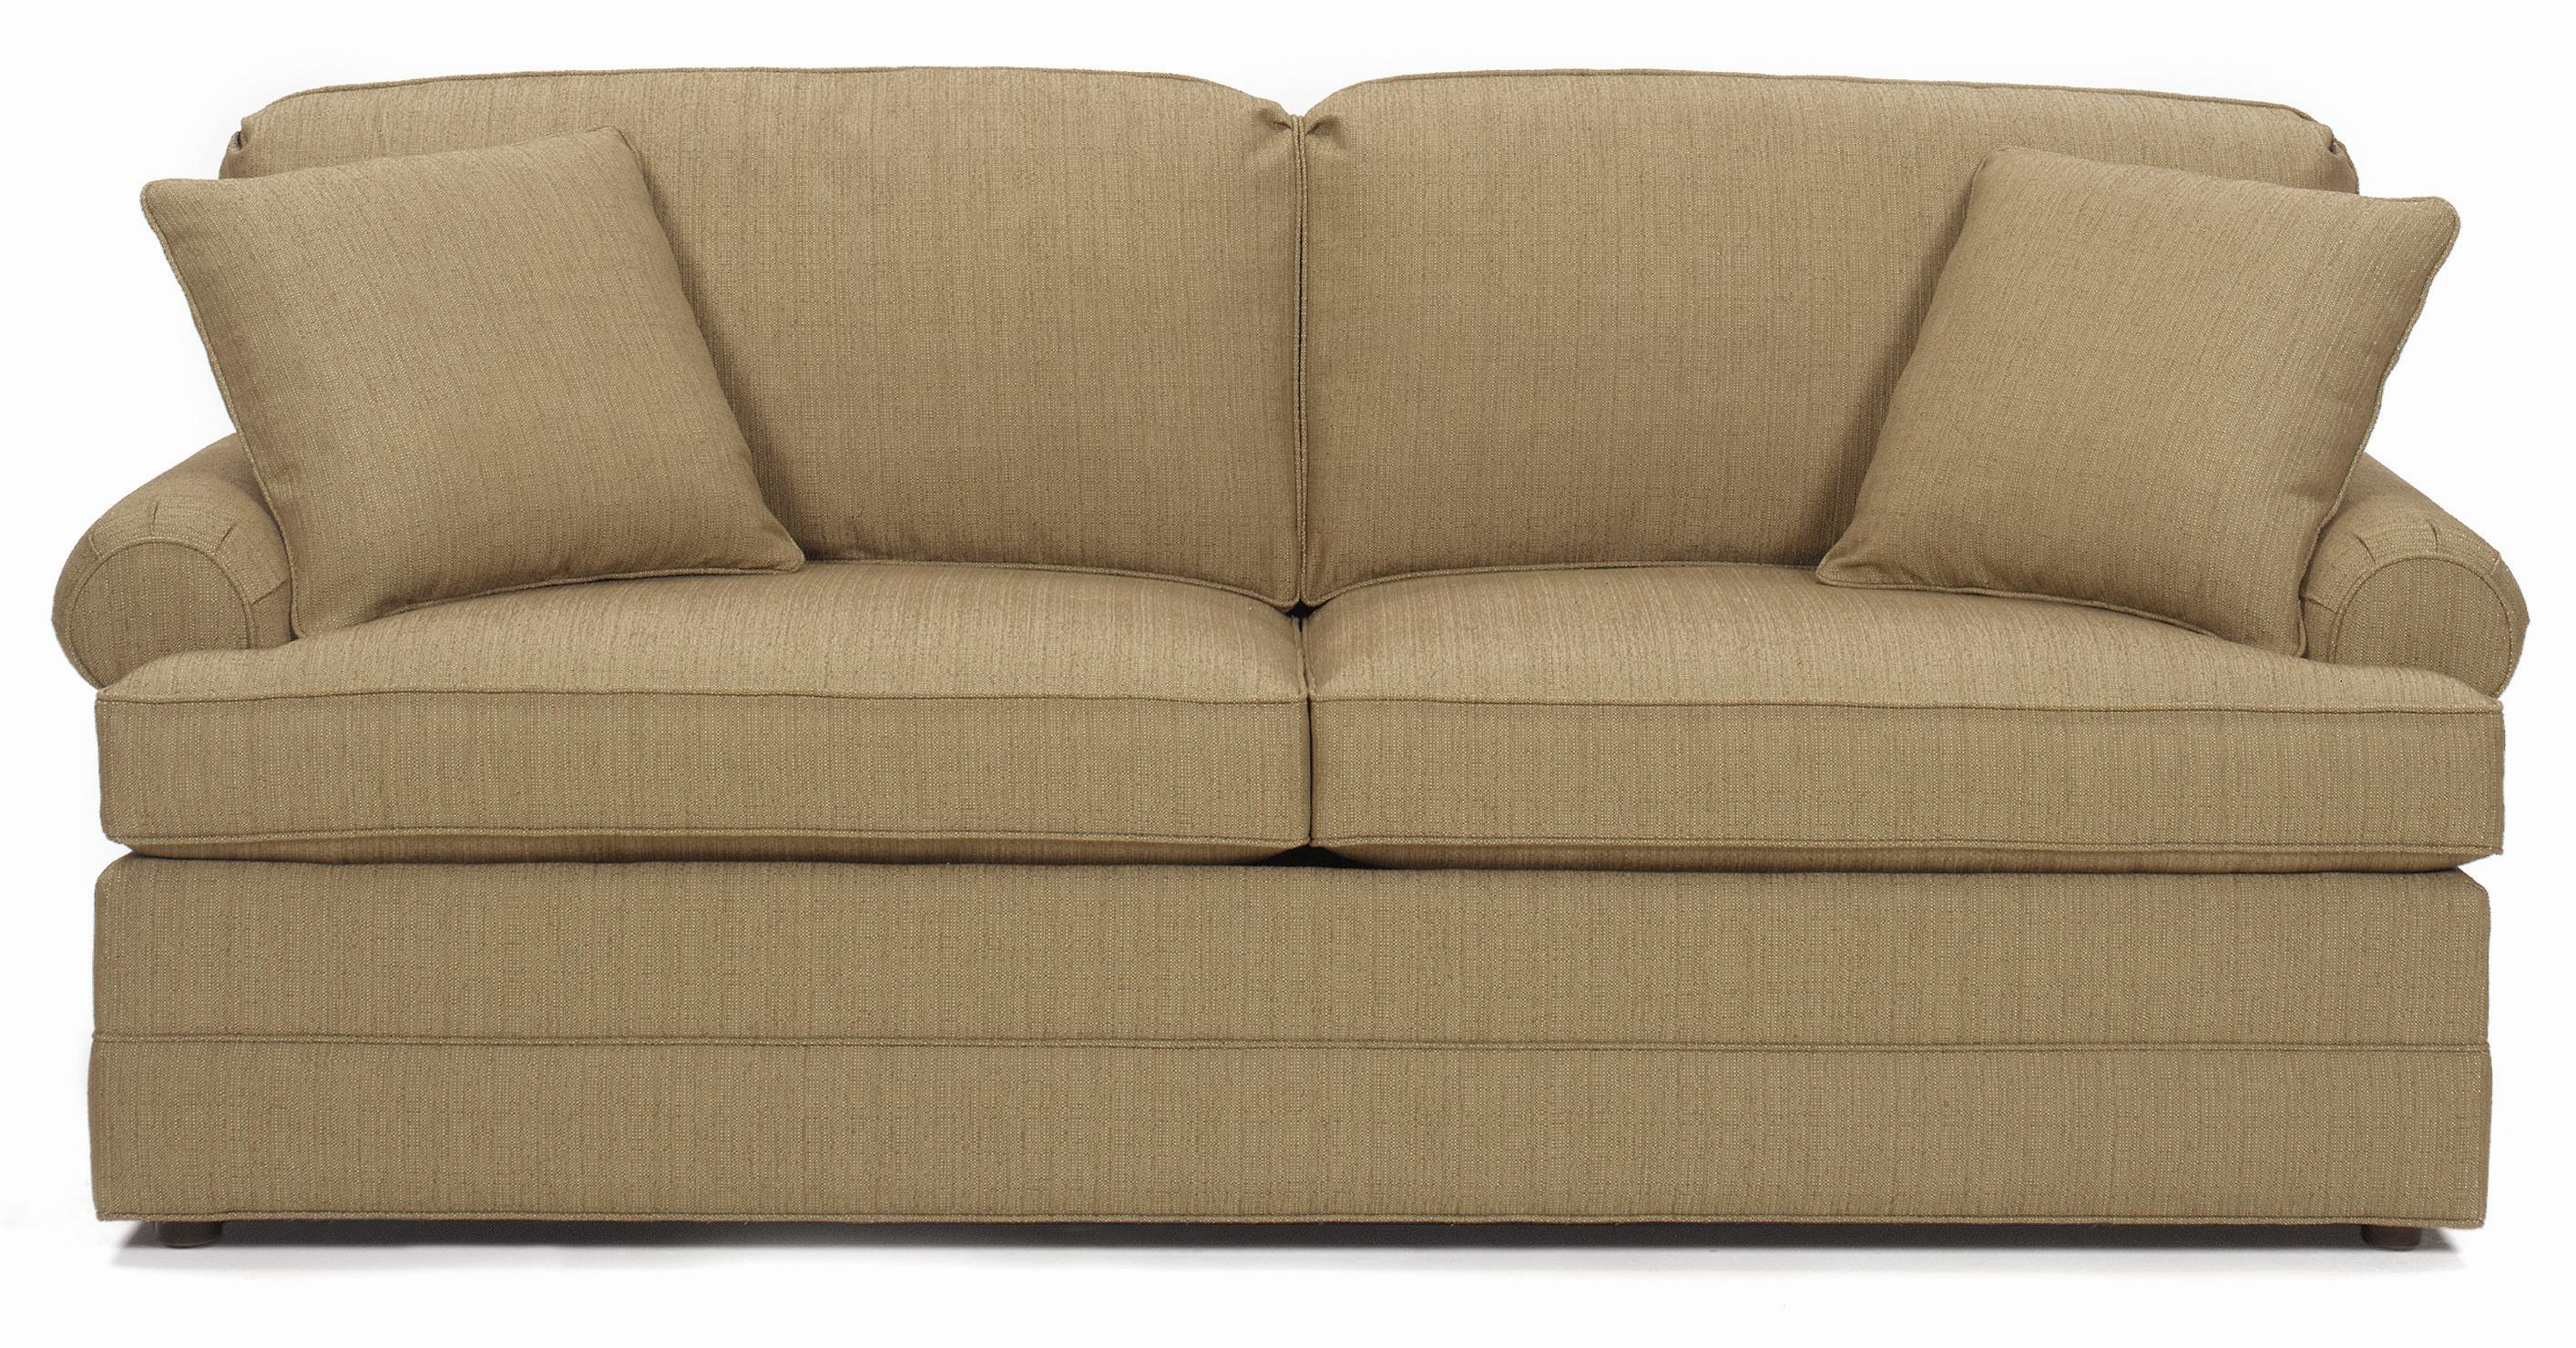 Personal Design Series <b>Customizable</b> McConnell Sofa by Lexington at Johnny Janosik